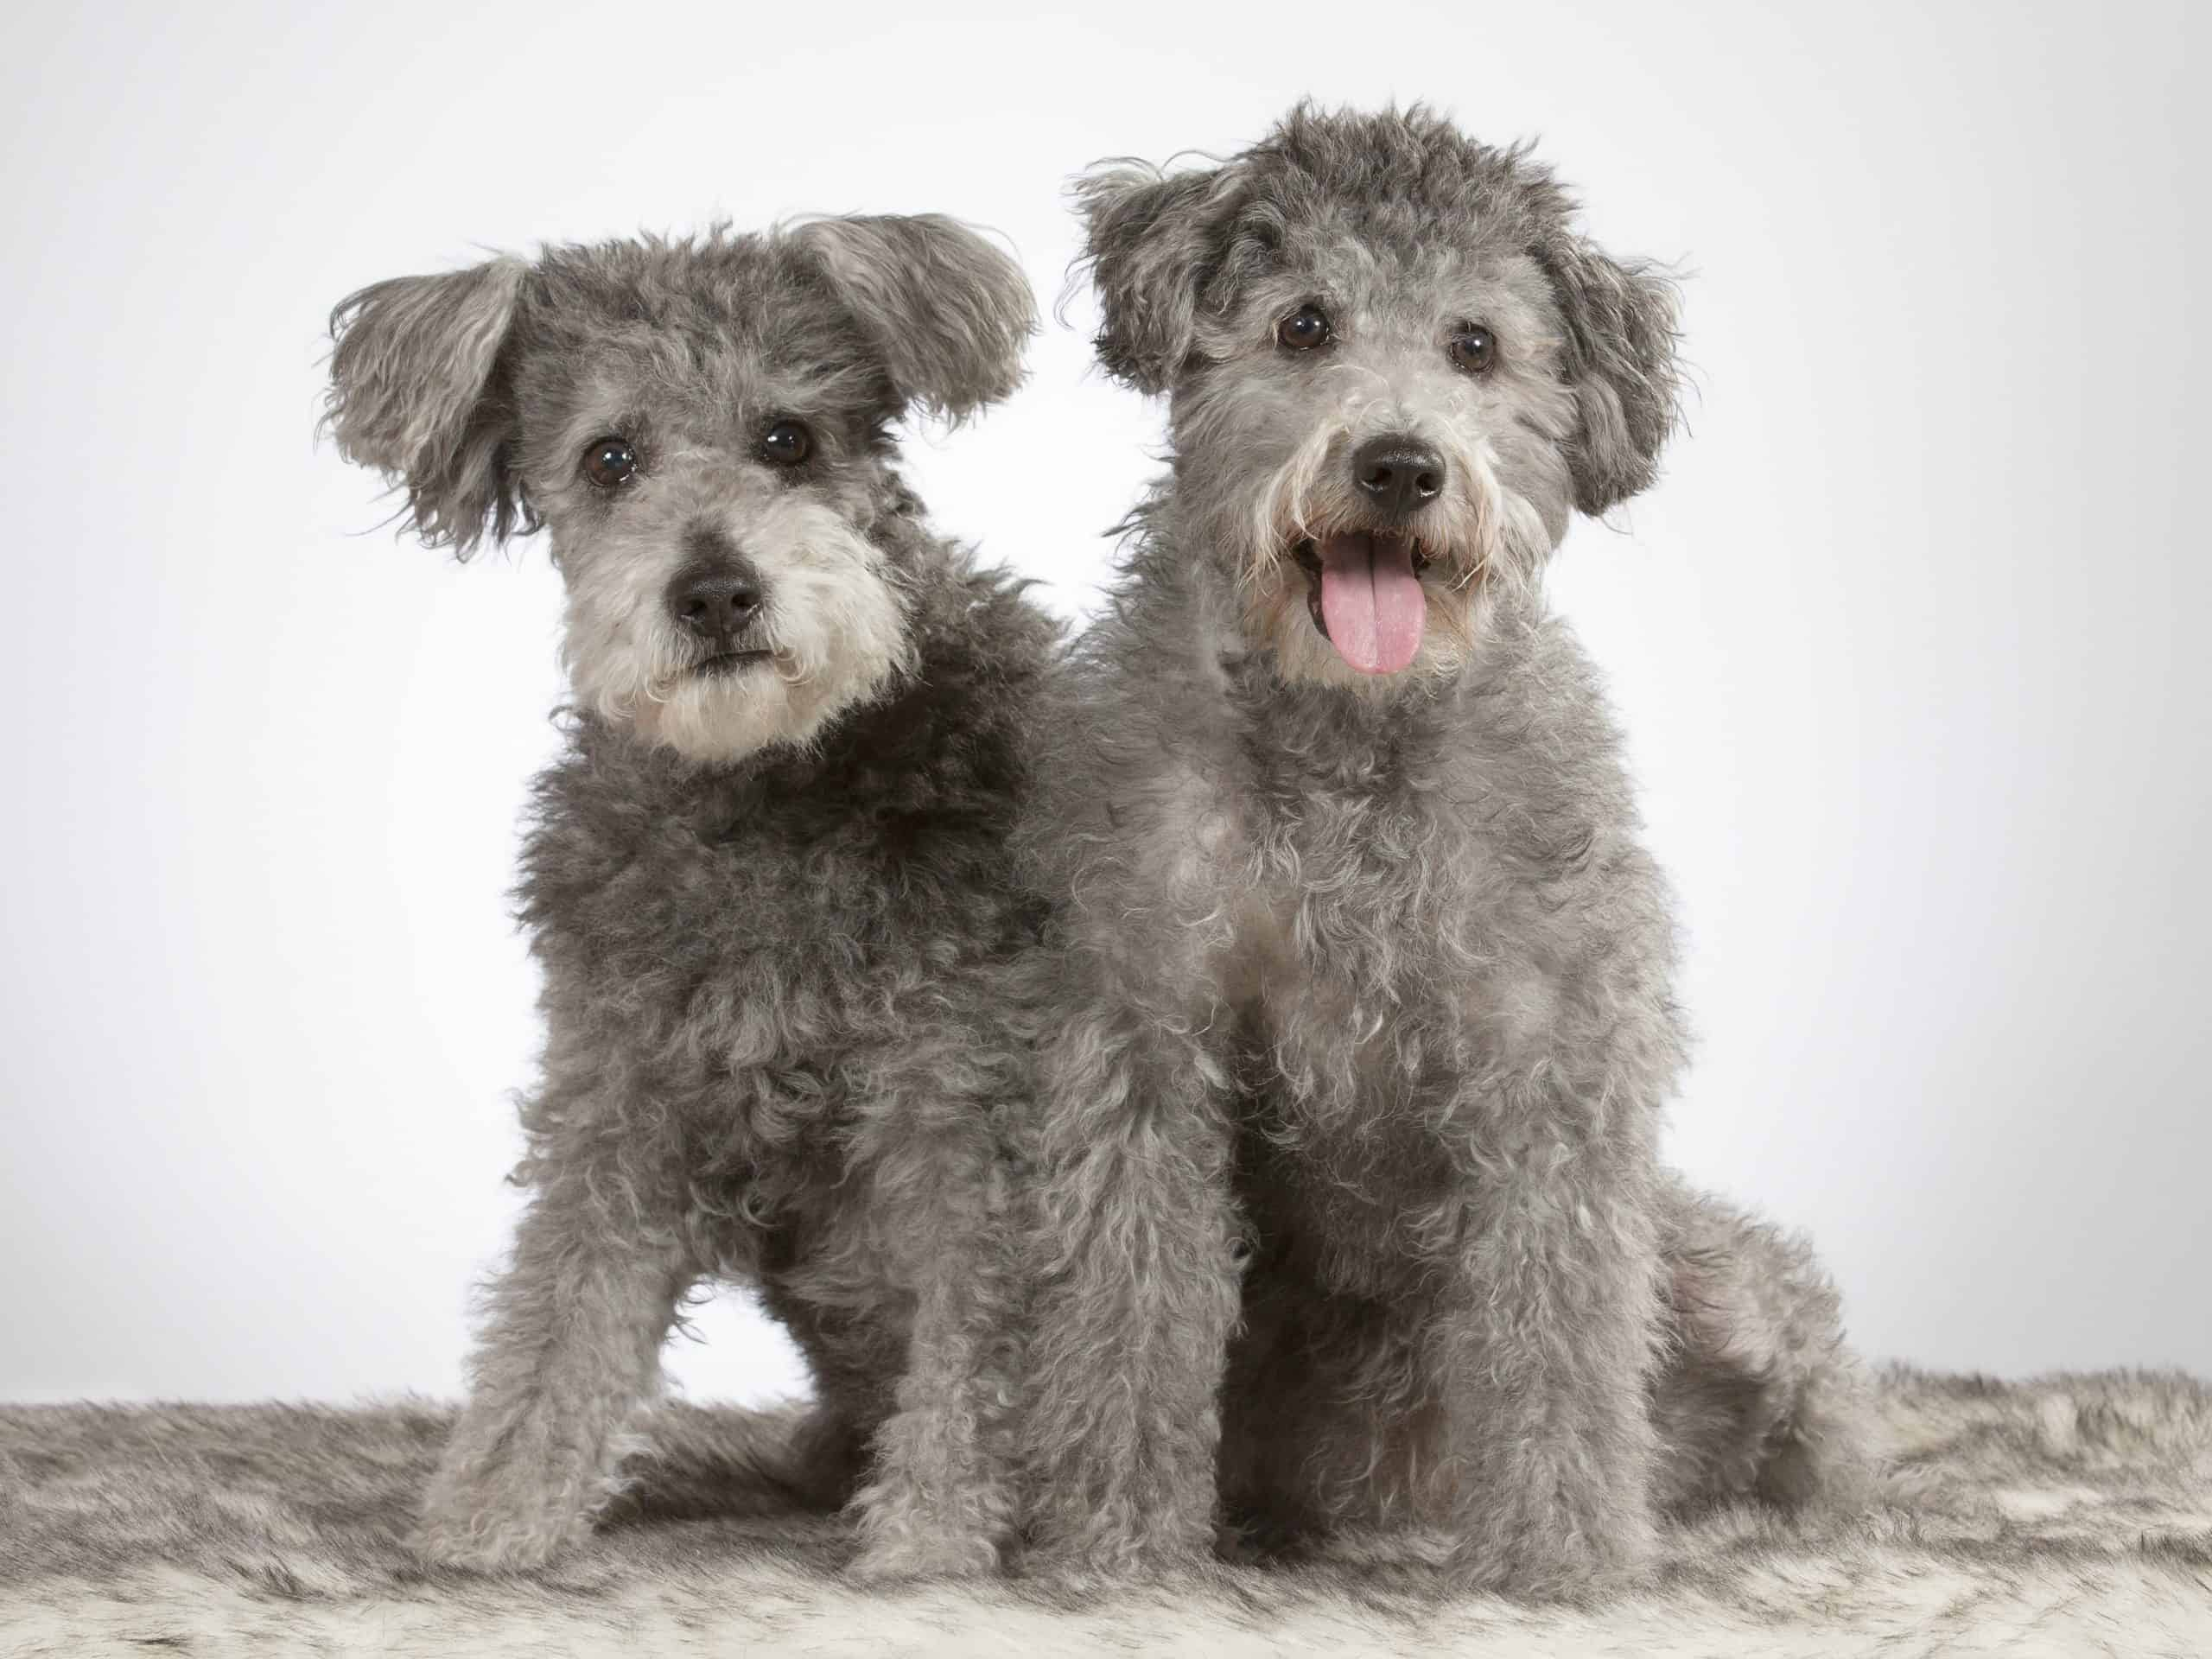 Two Pumi puppies. The pumi is considered a non-shedding dog breed.